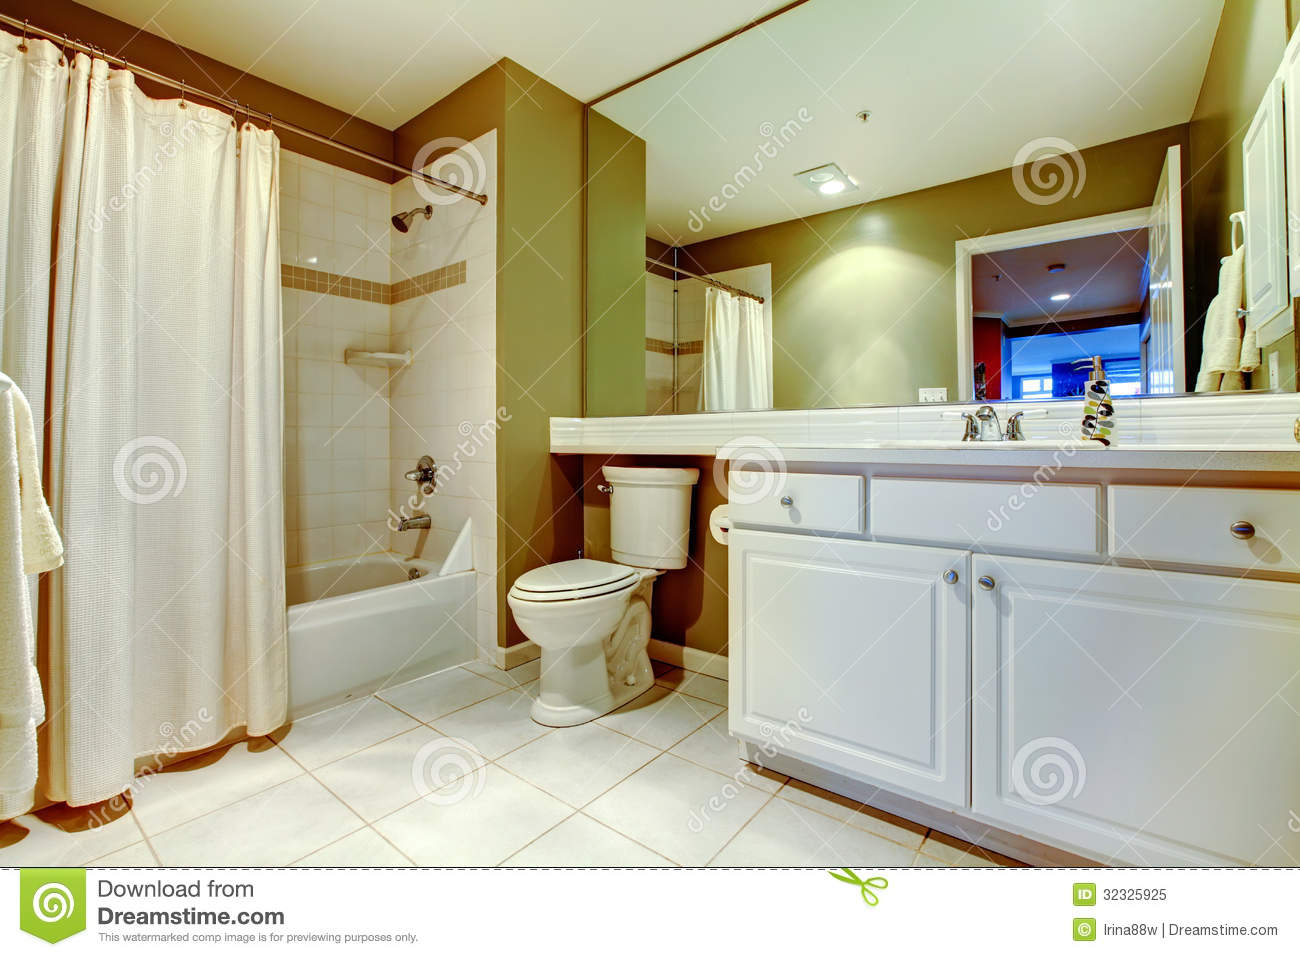 Green And White Bathroom With Sink Tub Curtain